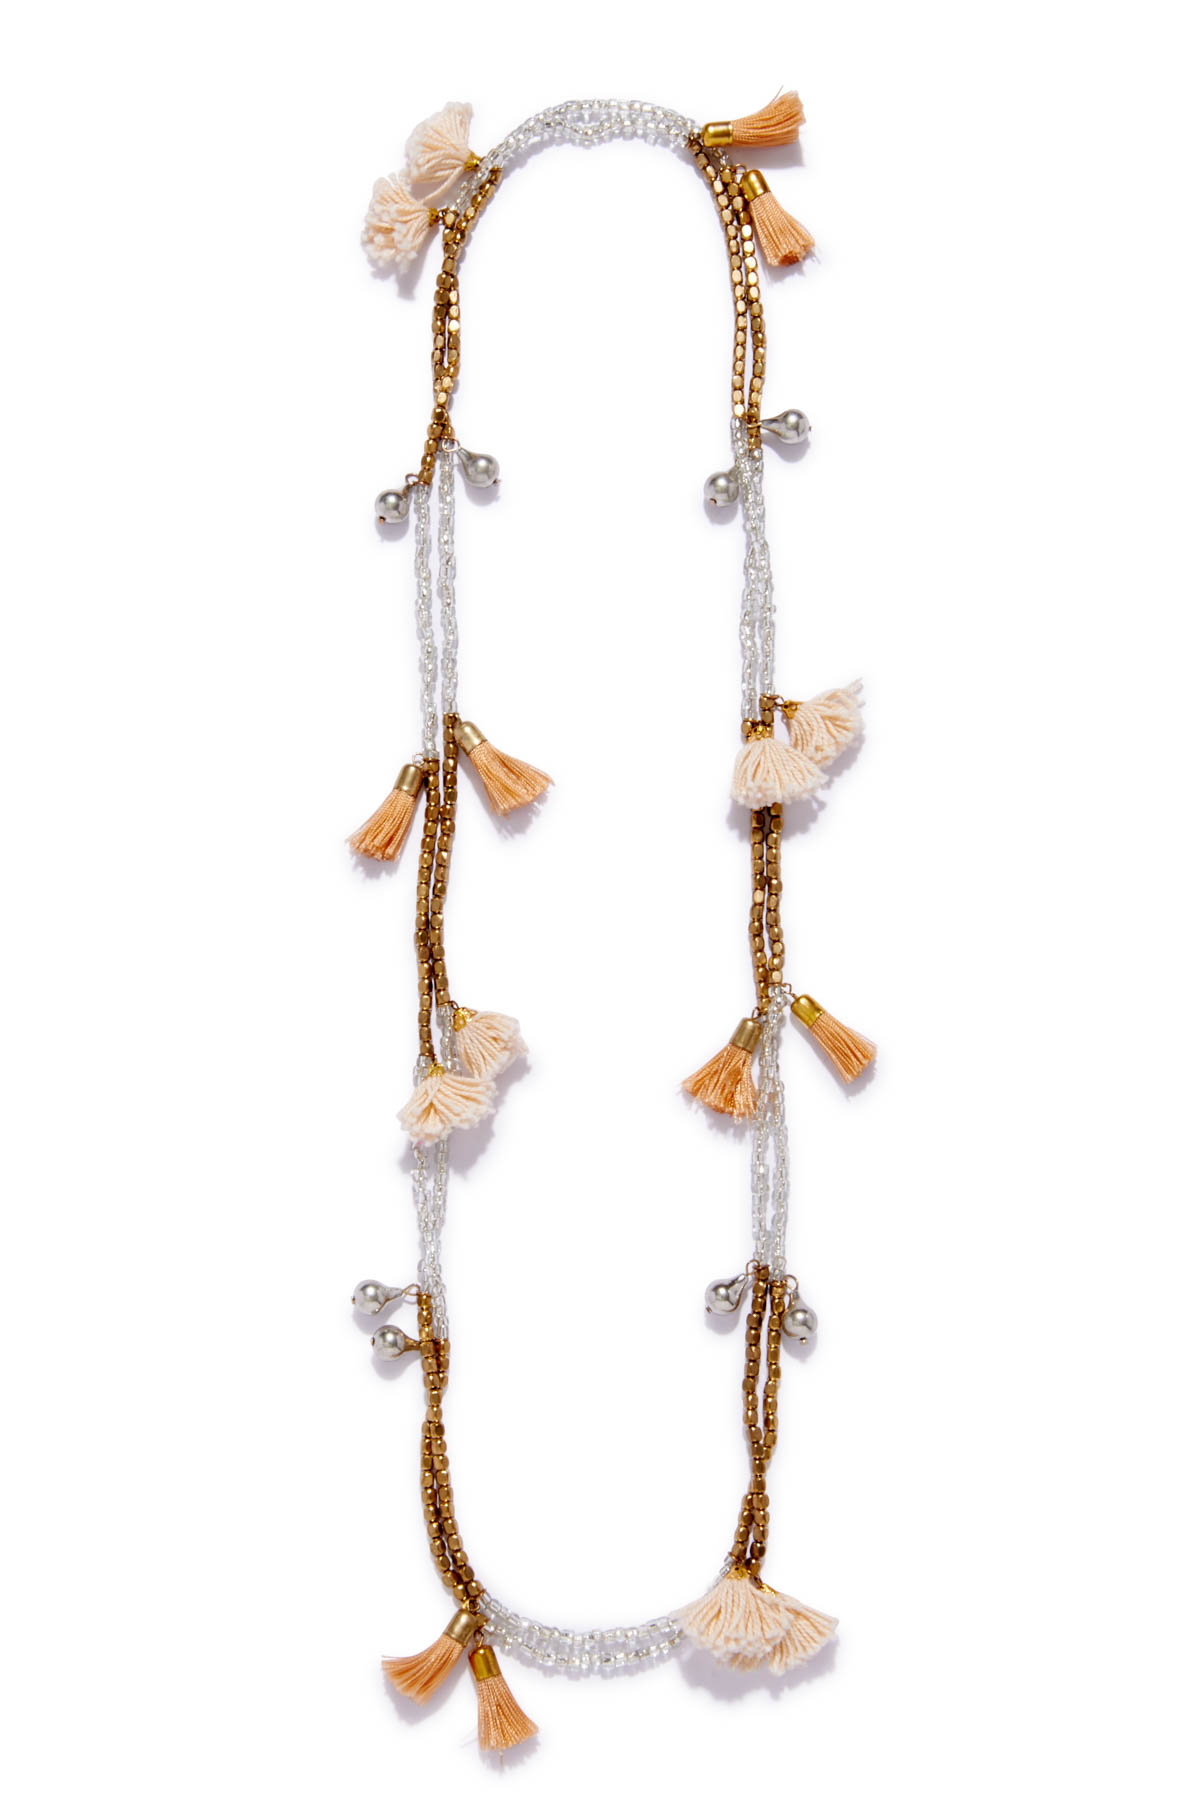 Metallic Tassel Necklace - Gold/Silver 1